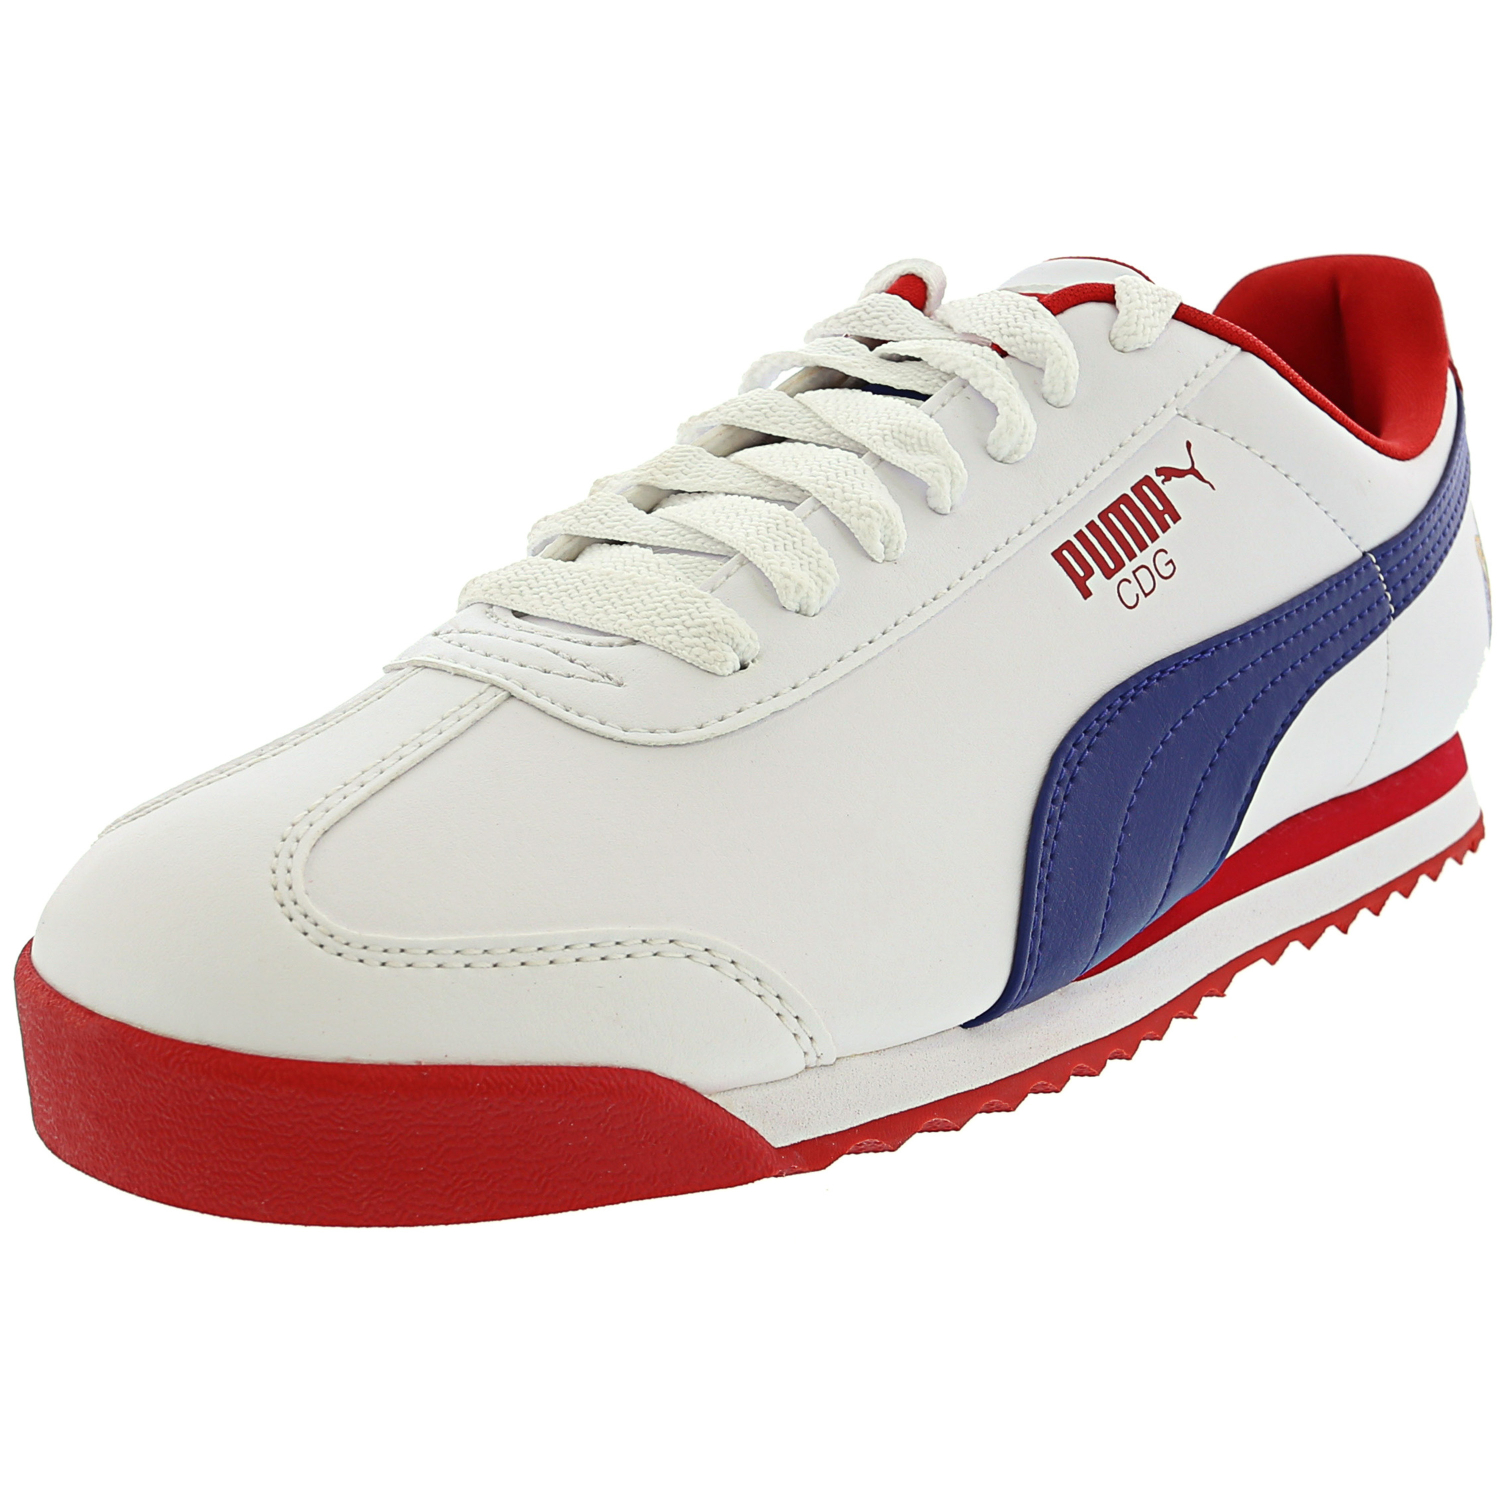 Puma Men's Roma Basic Cdg Ankle-High Leather Fashion Sneaker